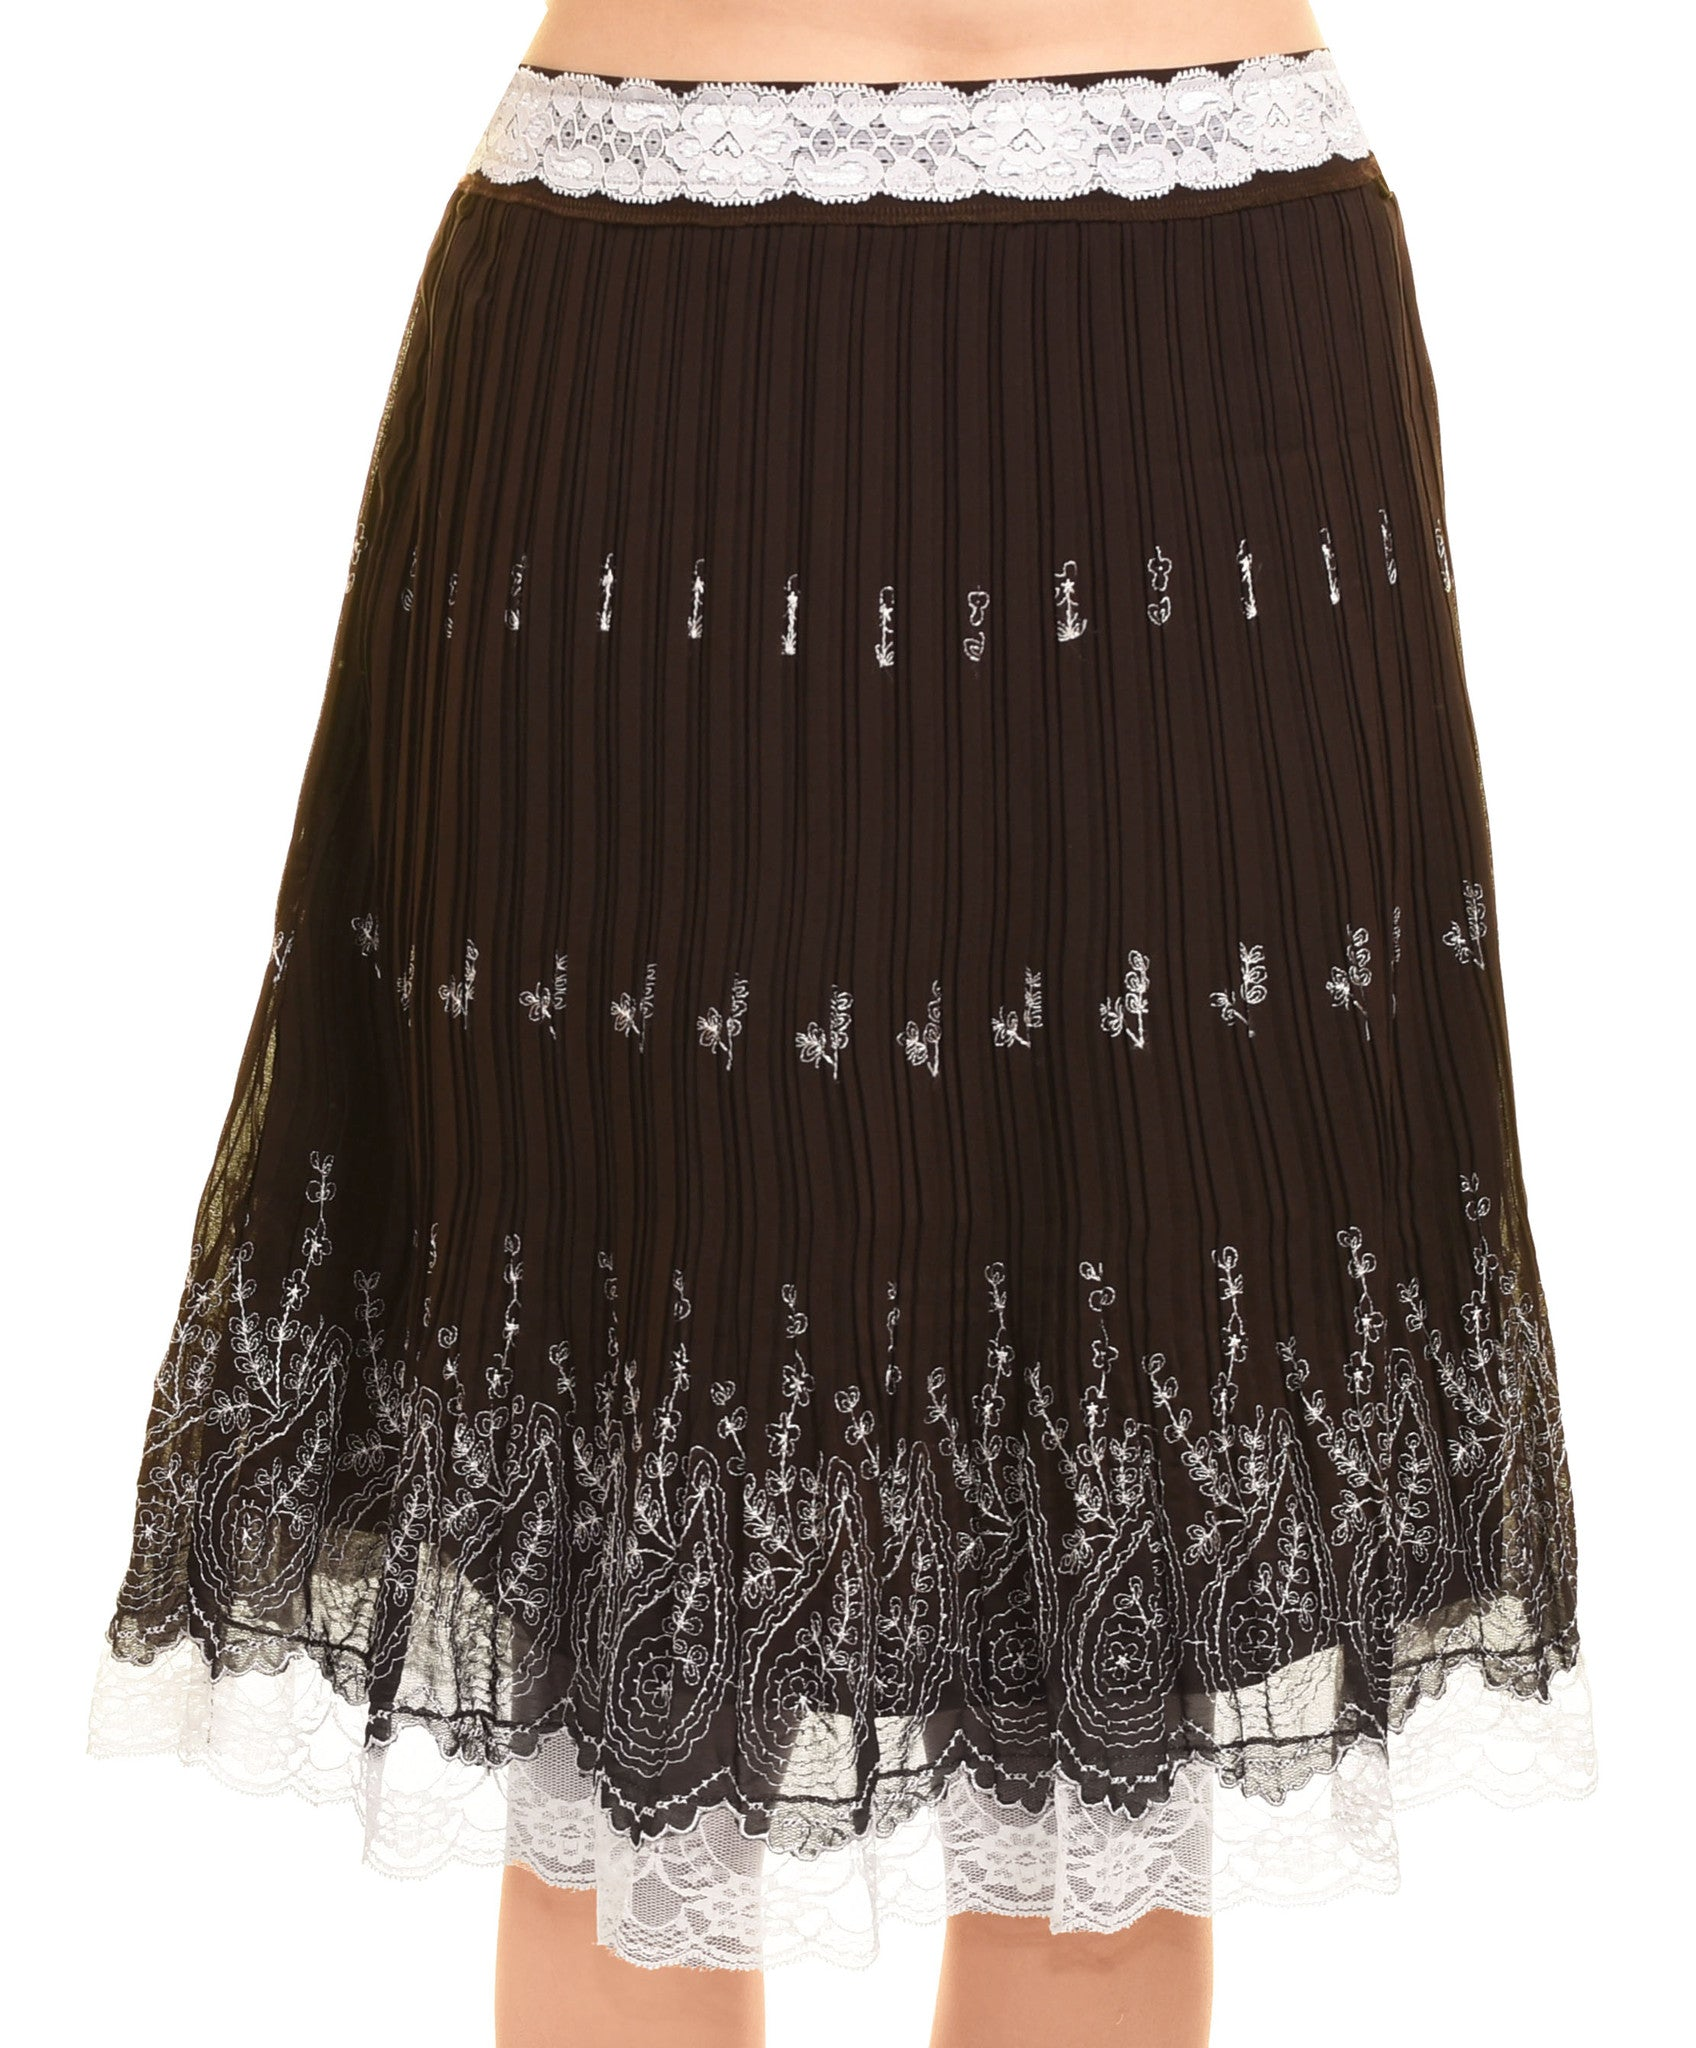 Accordion Pleated Chiffon Skirt,Skirts,Style - Discount Divas